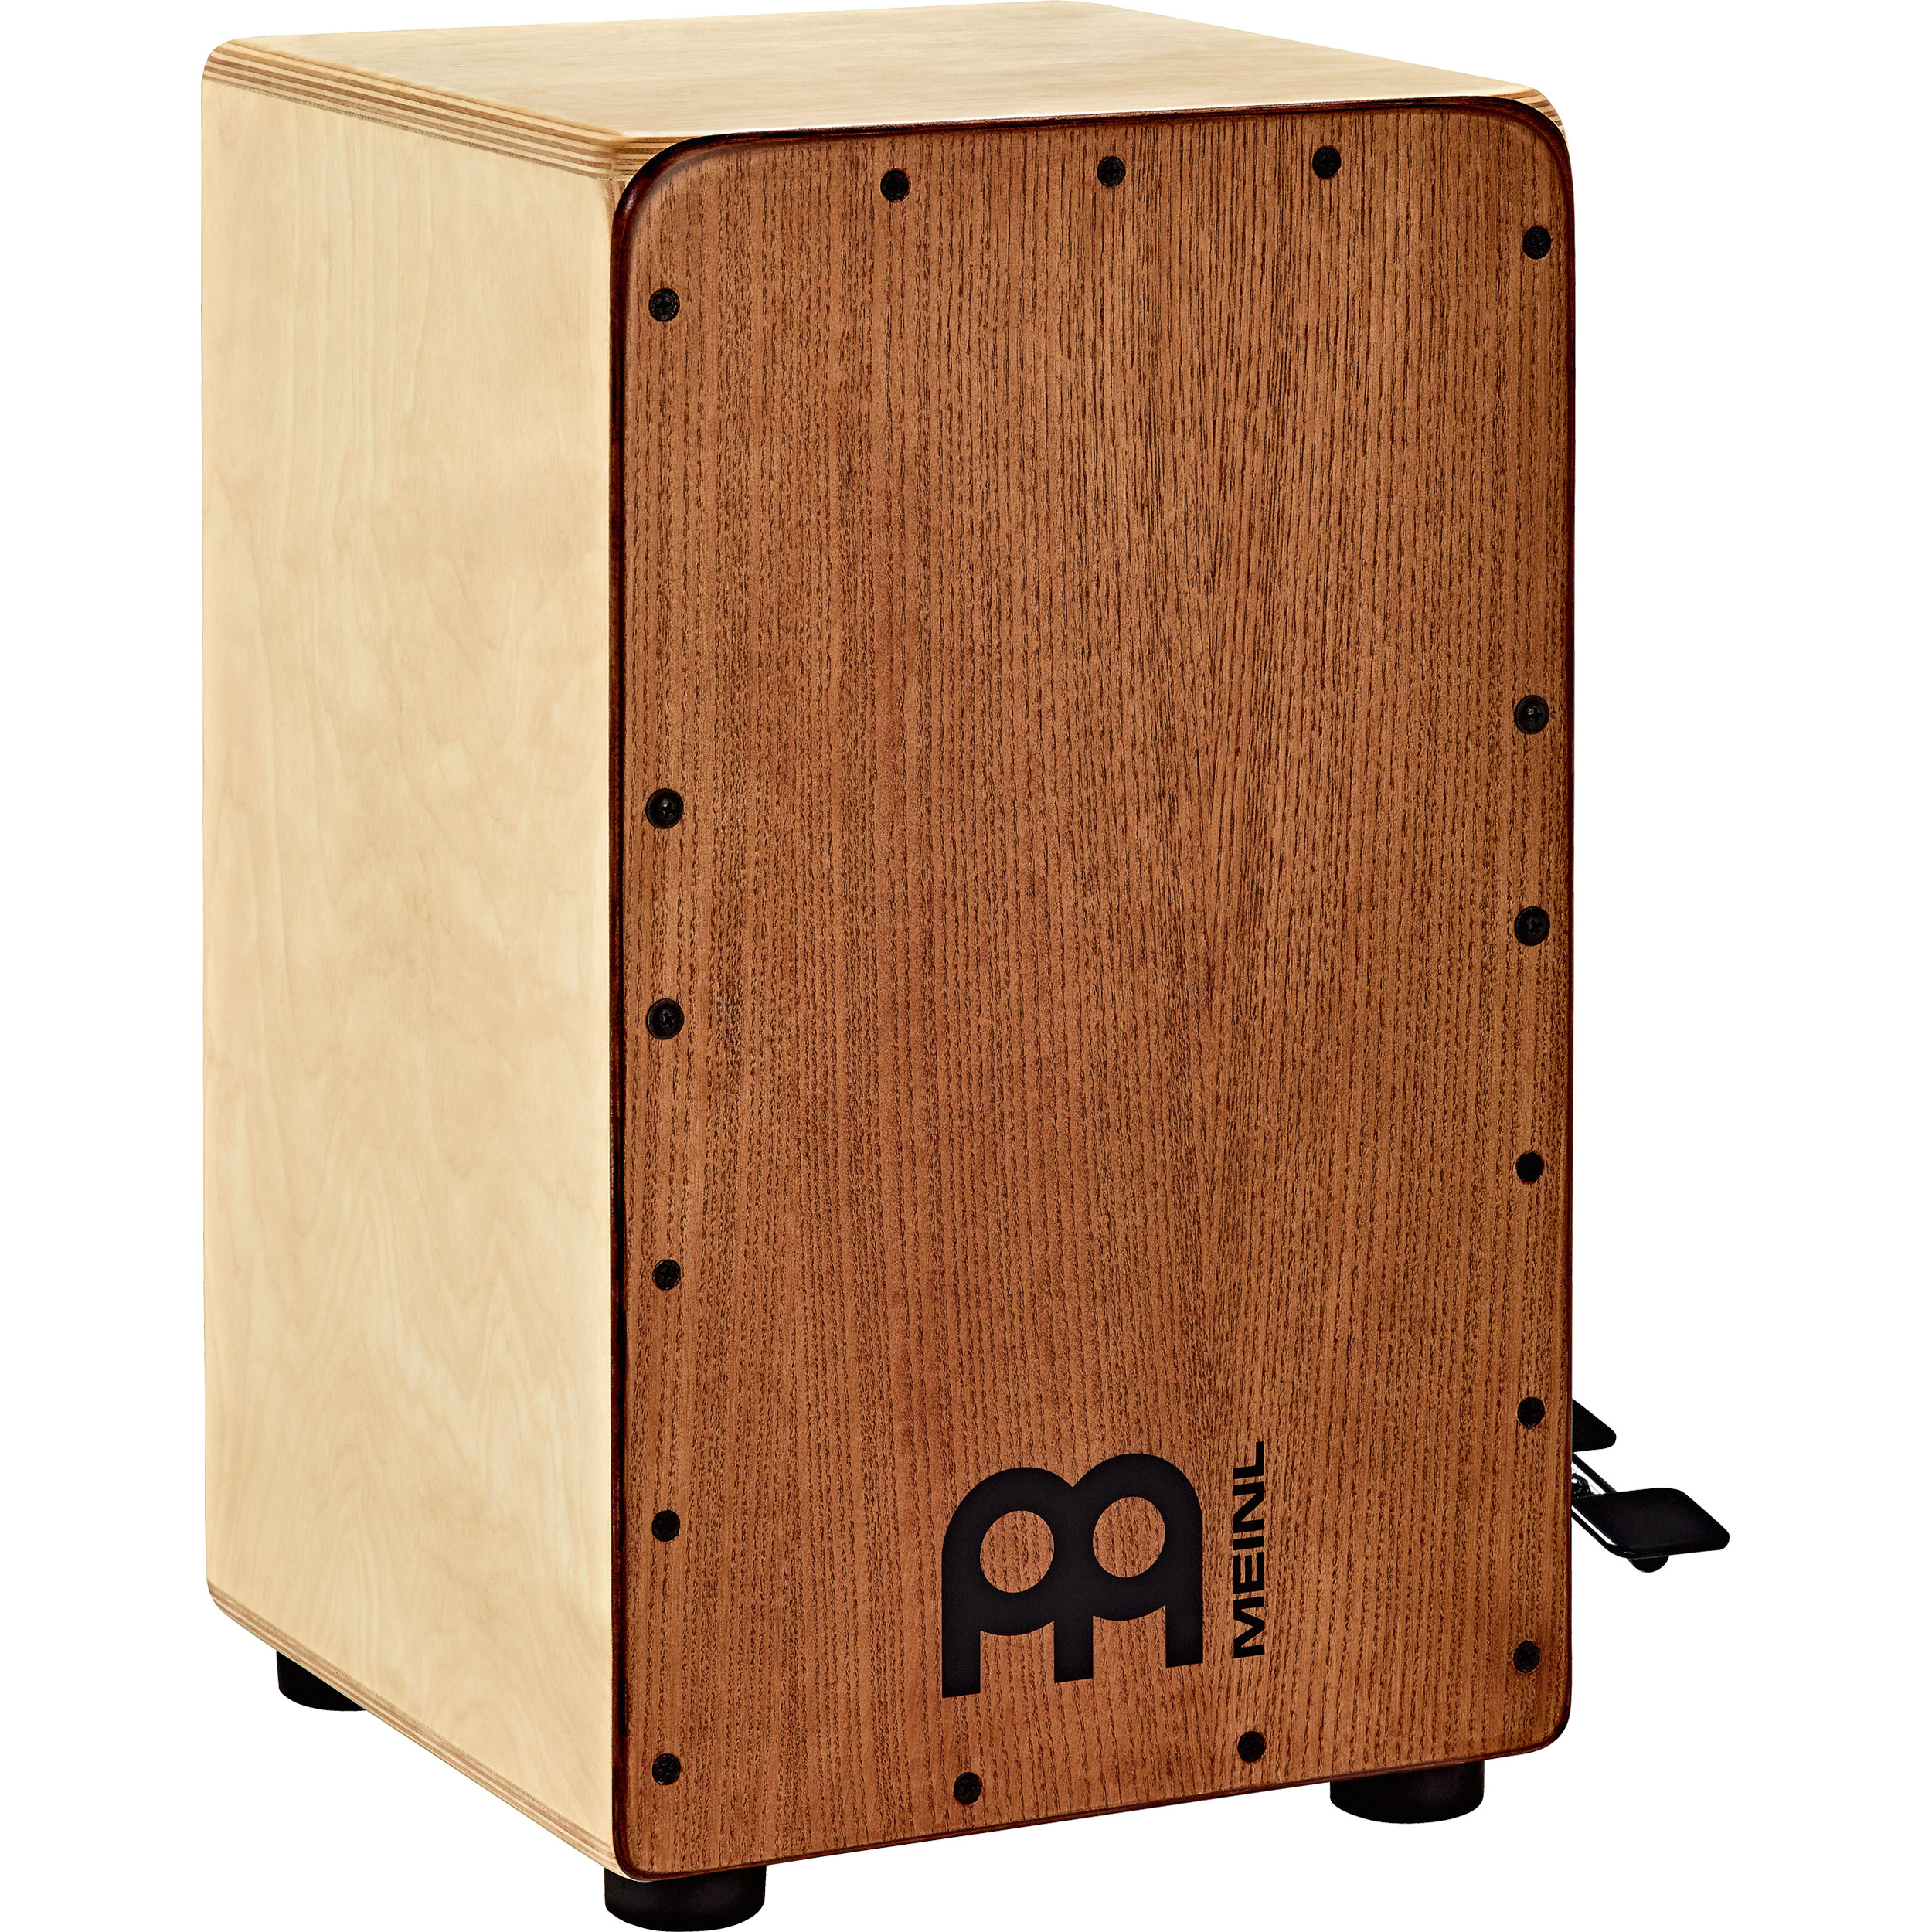 Meinl Snarecraft Professional Cajon with American White Ash Frontplate